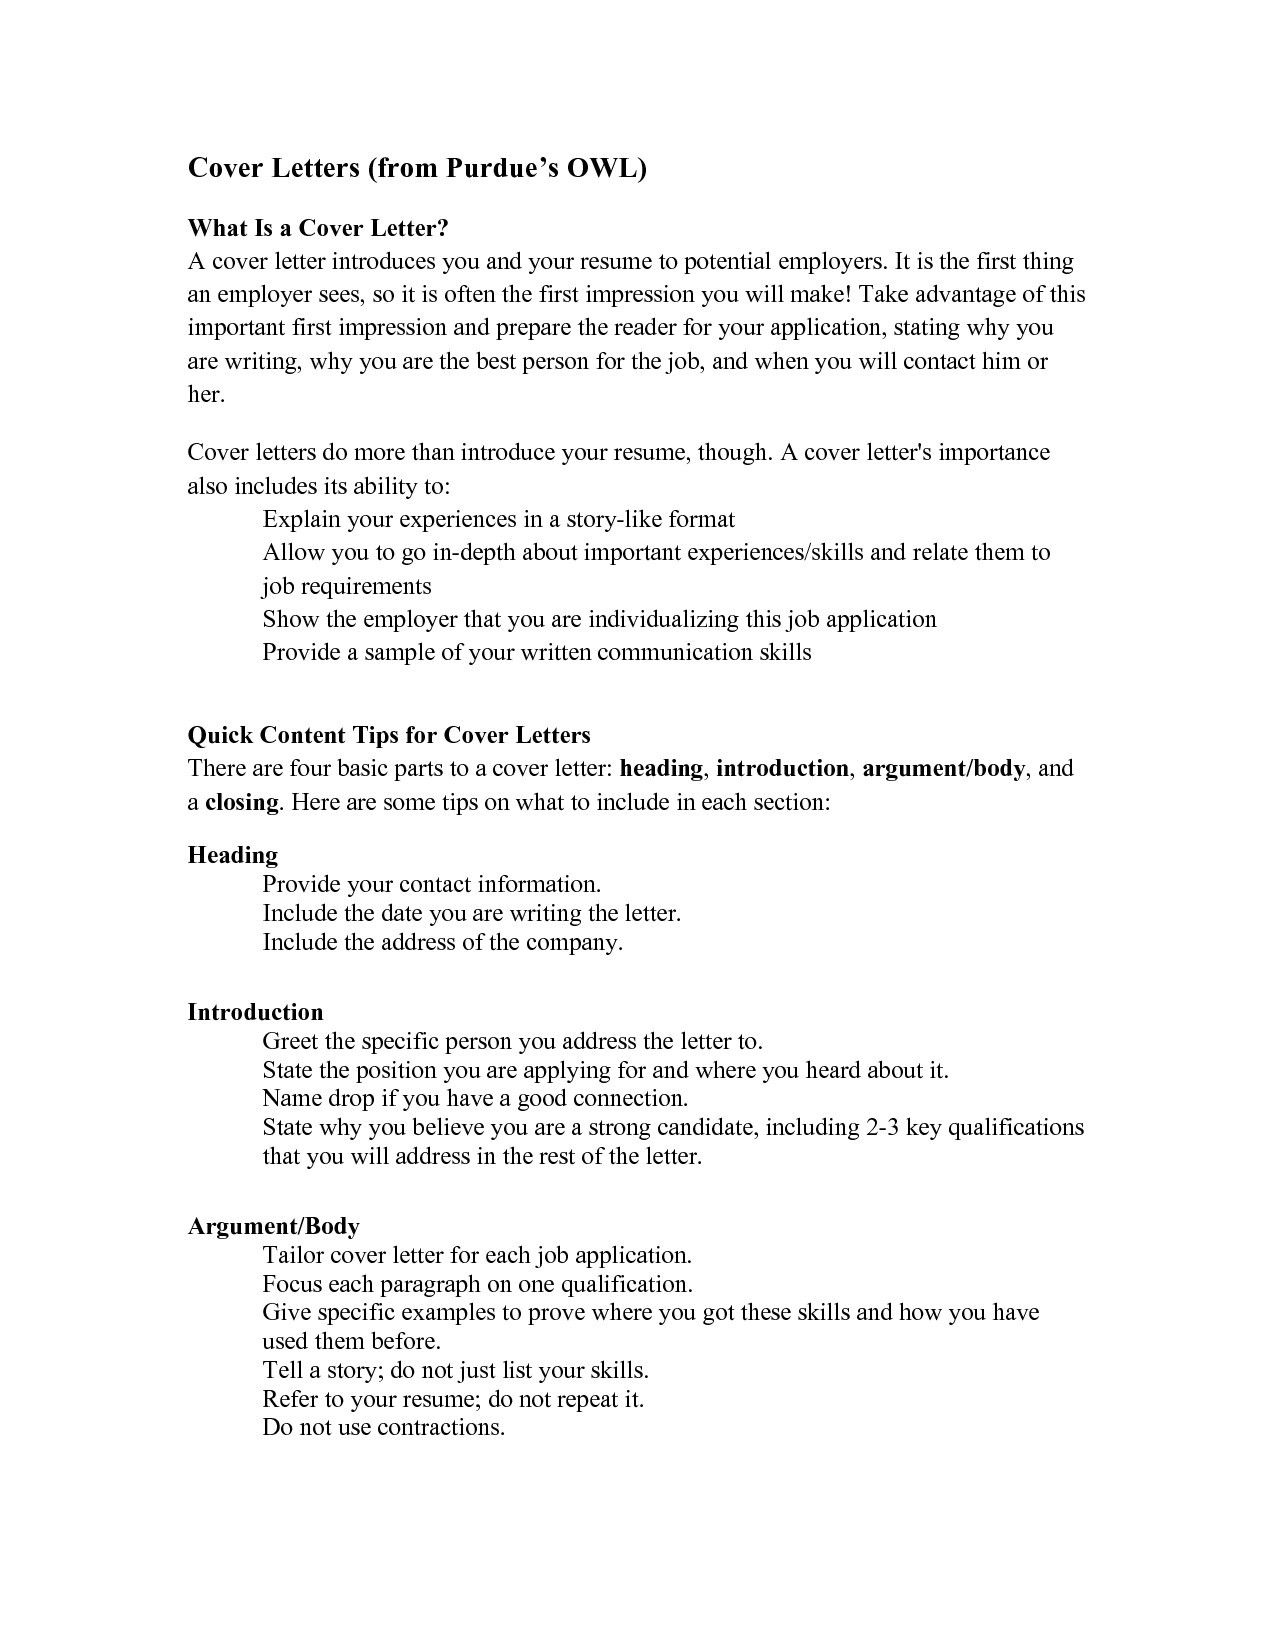 important is cover letter writing template importance of with resume freshman community Resume Importance Of Cover Letter With Resume